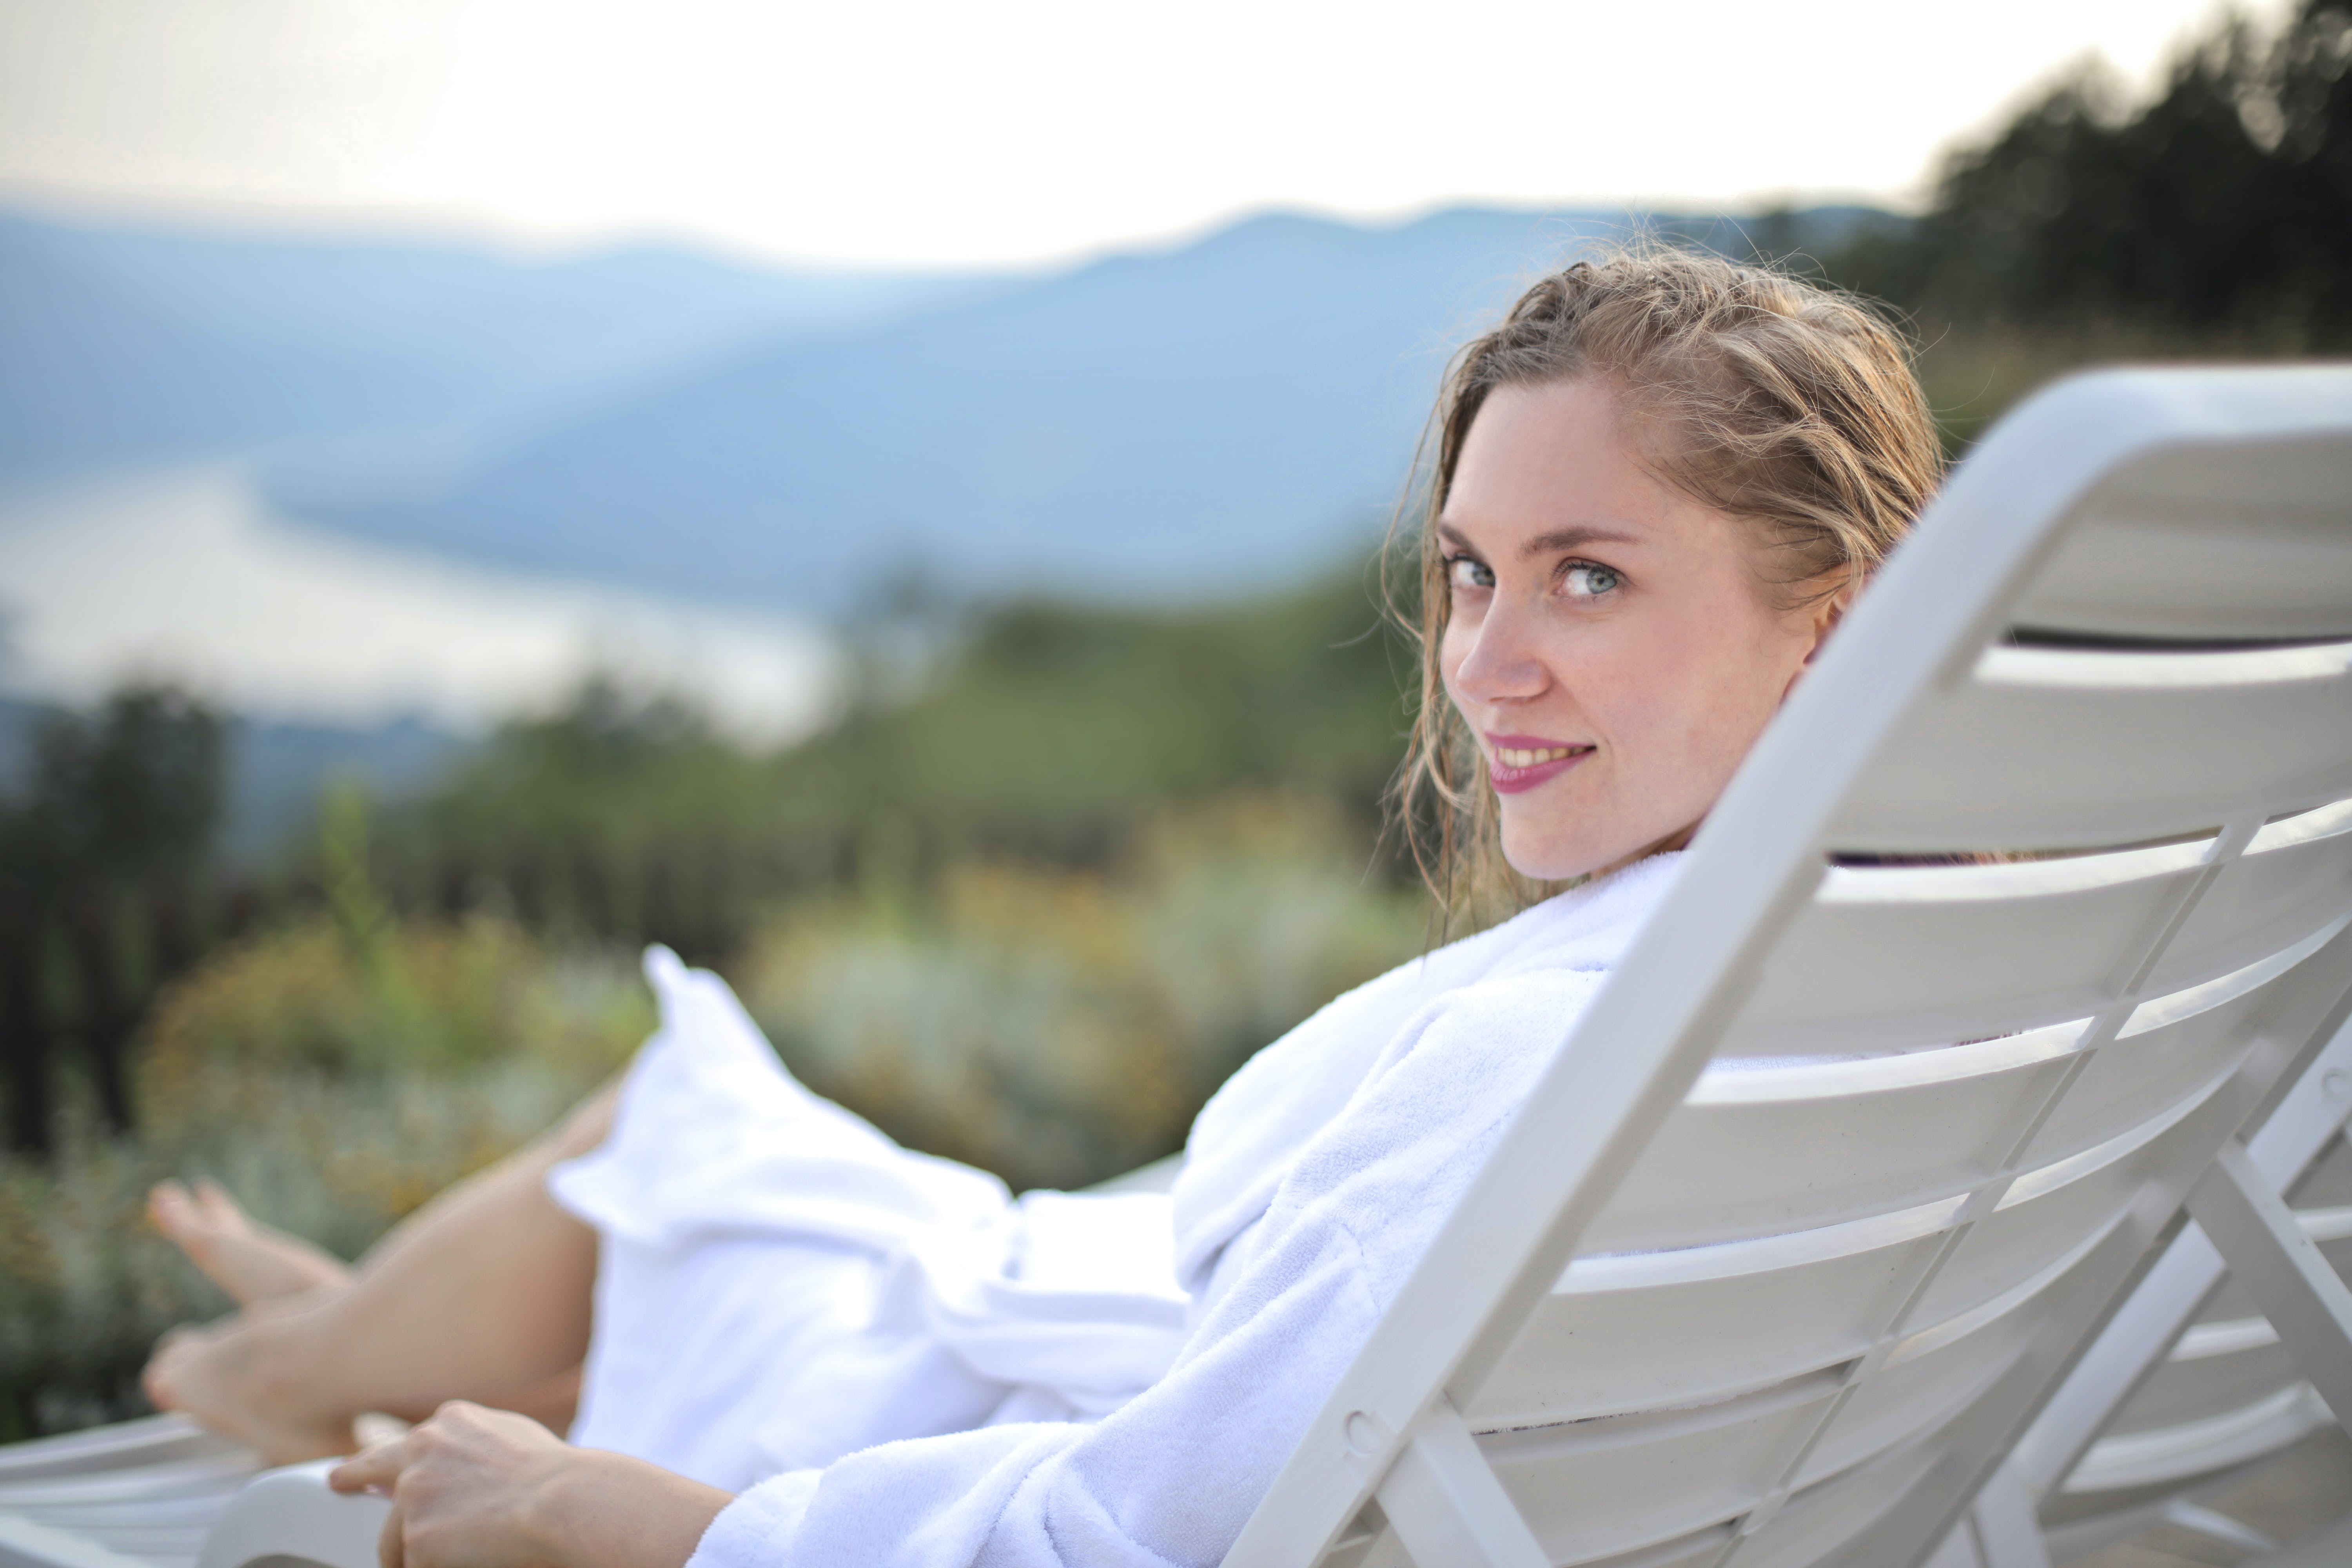 Selective Focus Photography of Smiling Woman Wearing White Bathrobe Lying on Pool Chair